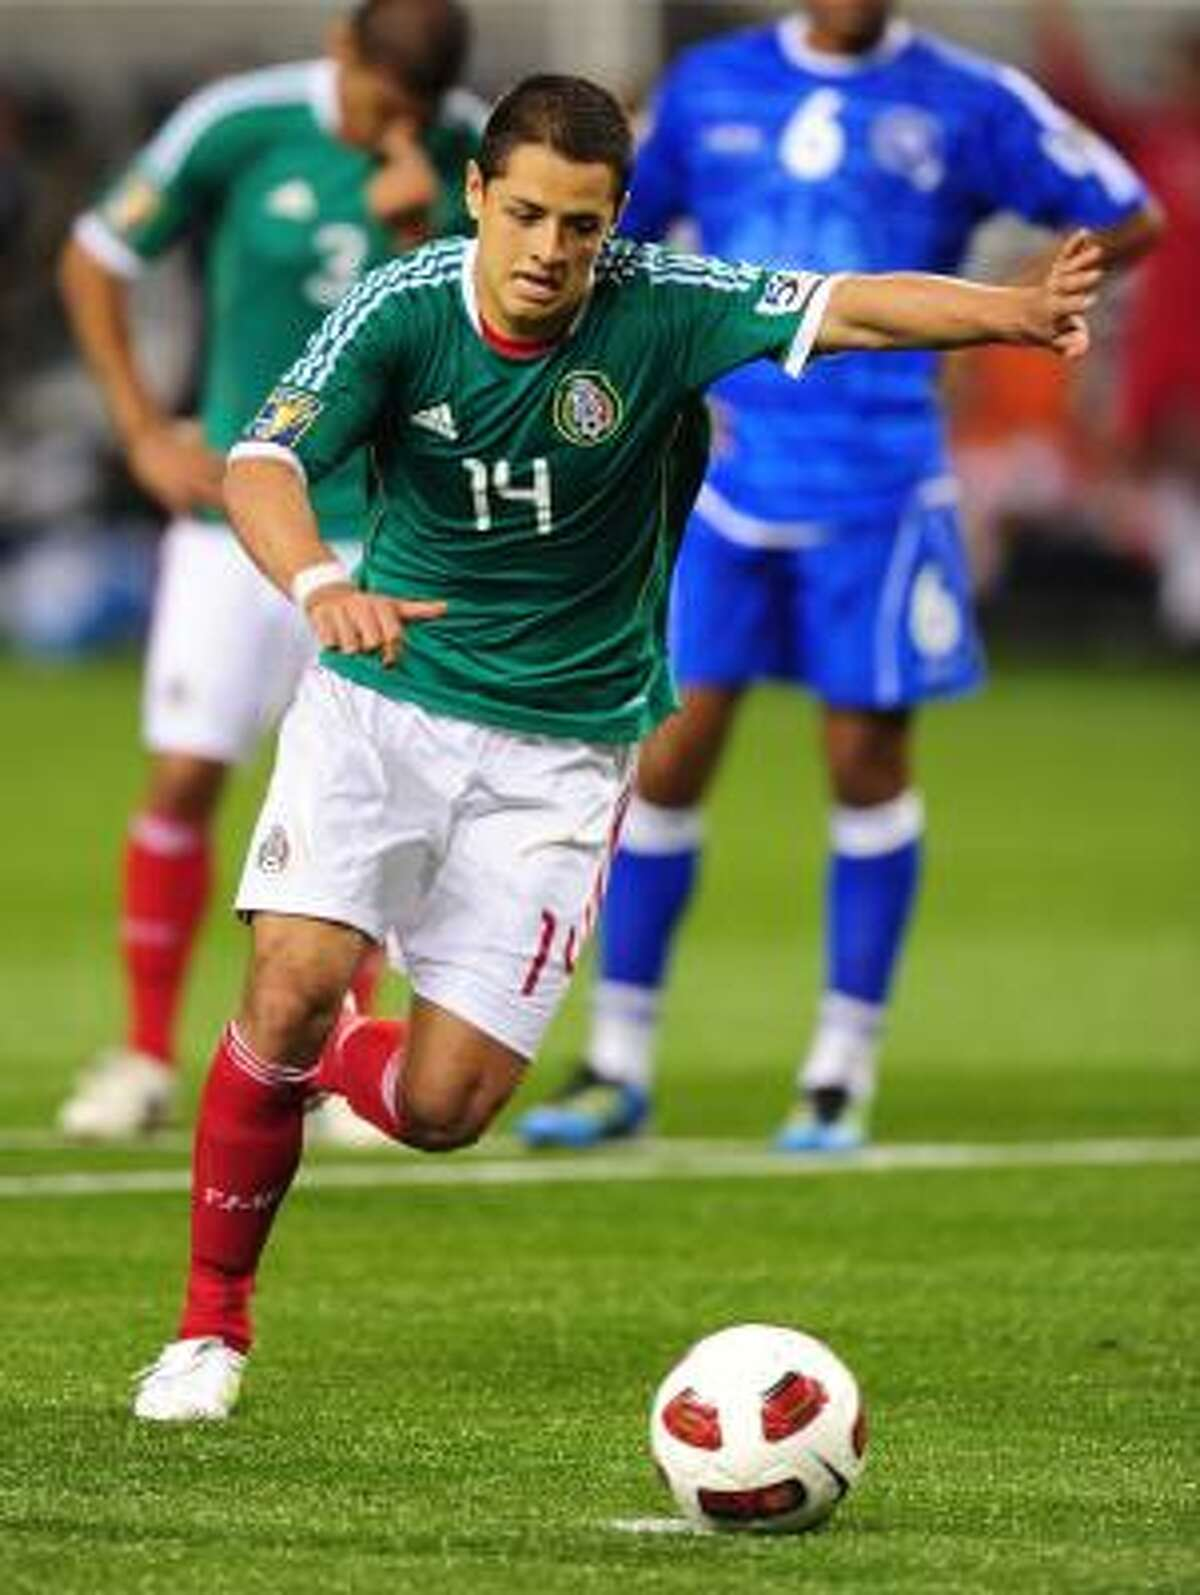 Mexico's Javier Hernández fires a penalty shot to claim his third goal.